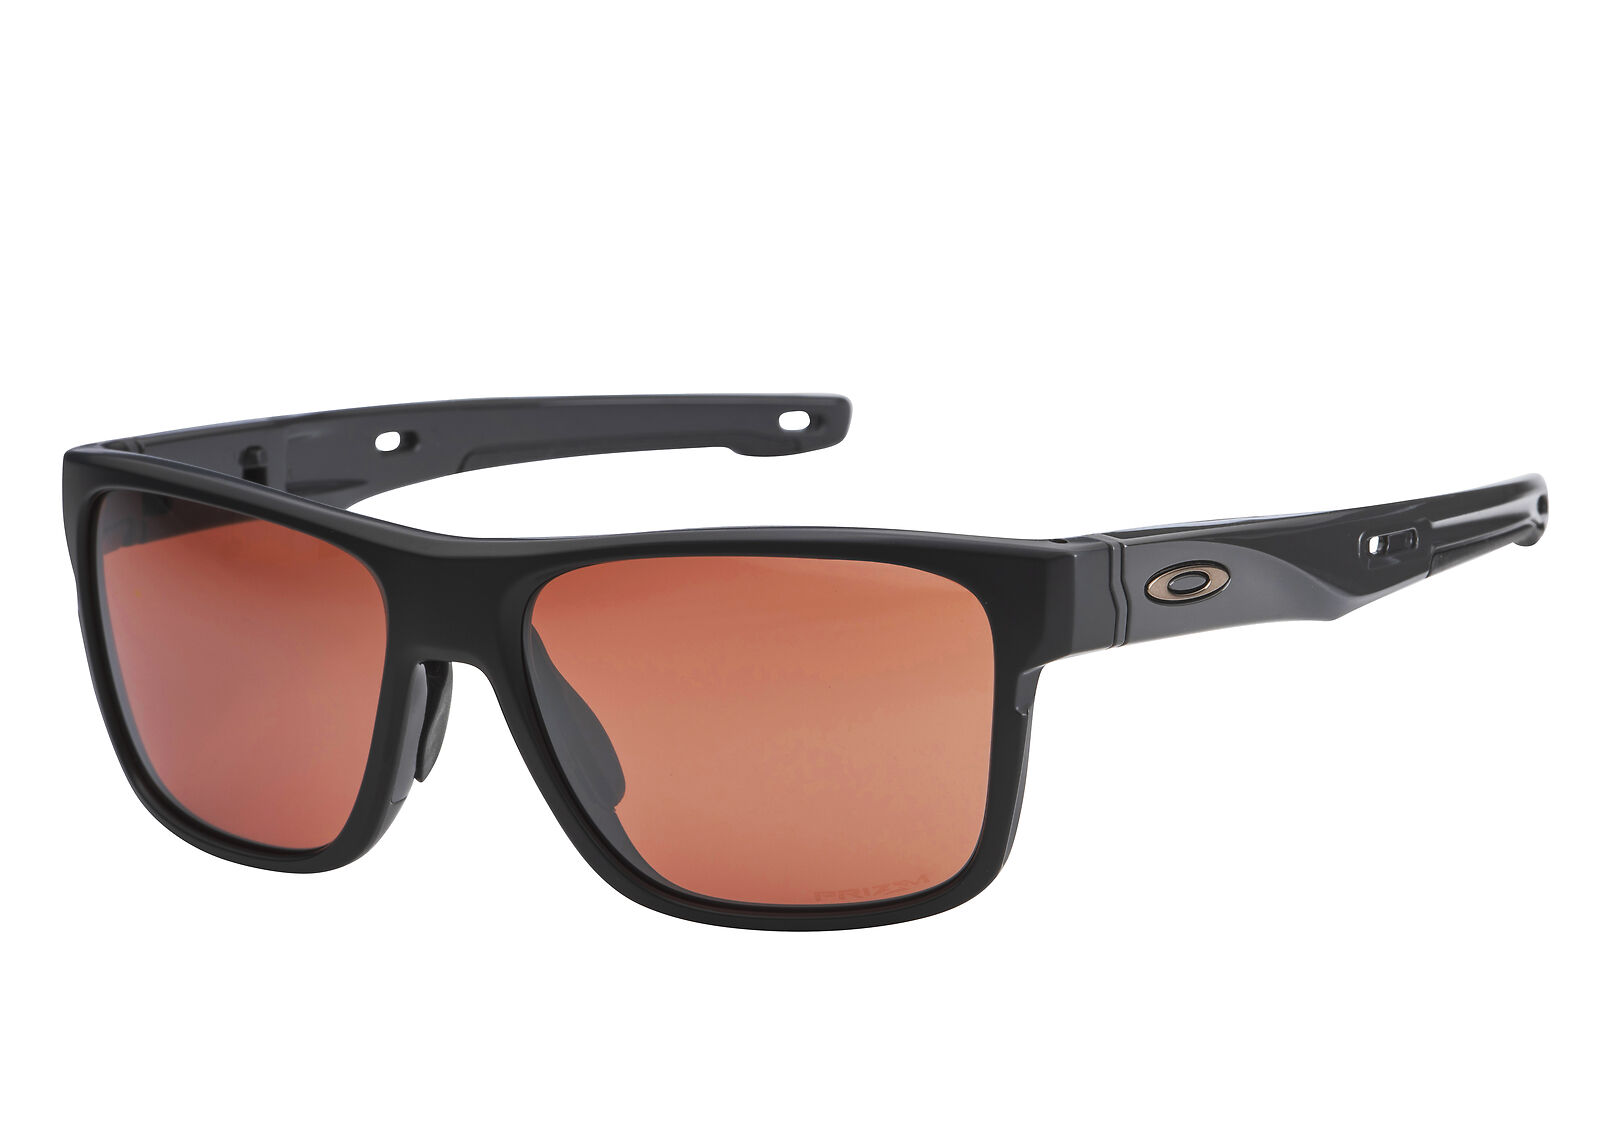 Oakley Crossrange Sunglasses Matte Black Prizm Dark Golf OO9361-17 9361-17  57mm 4914fb2a01